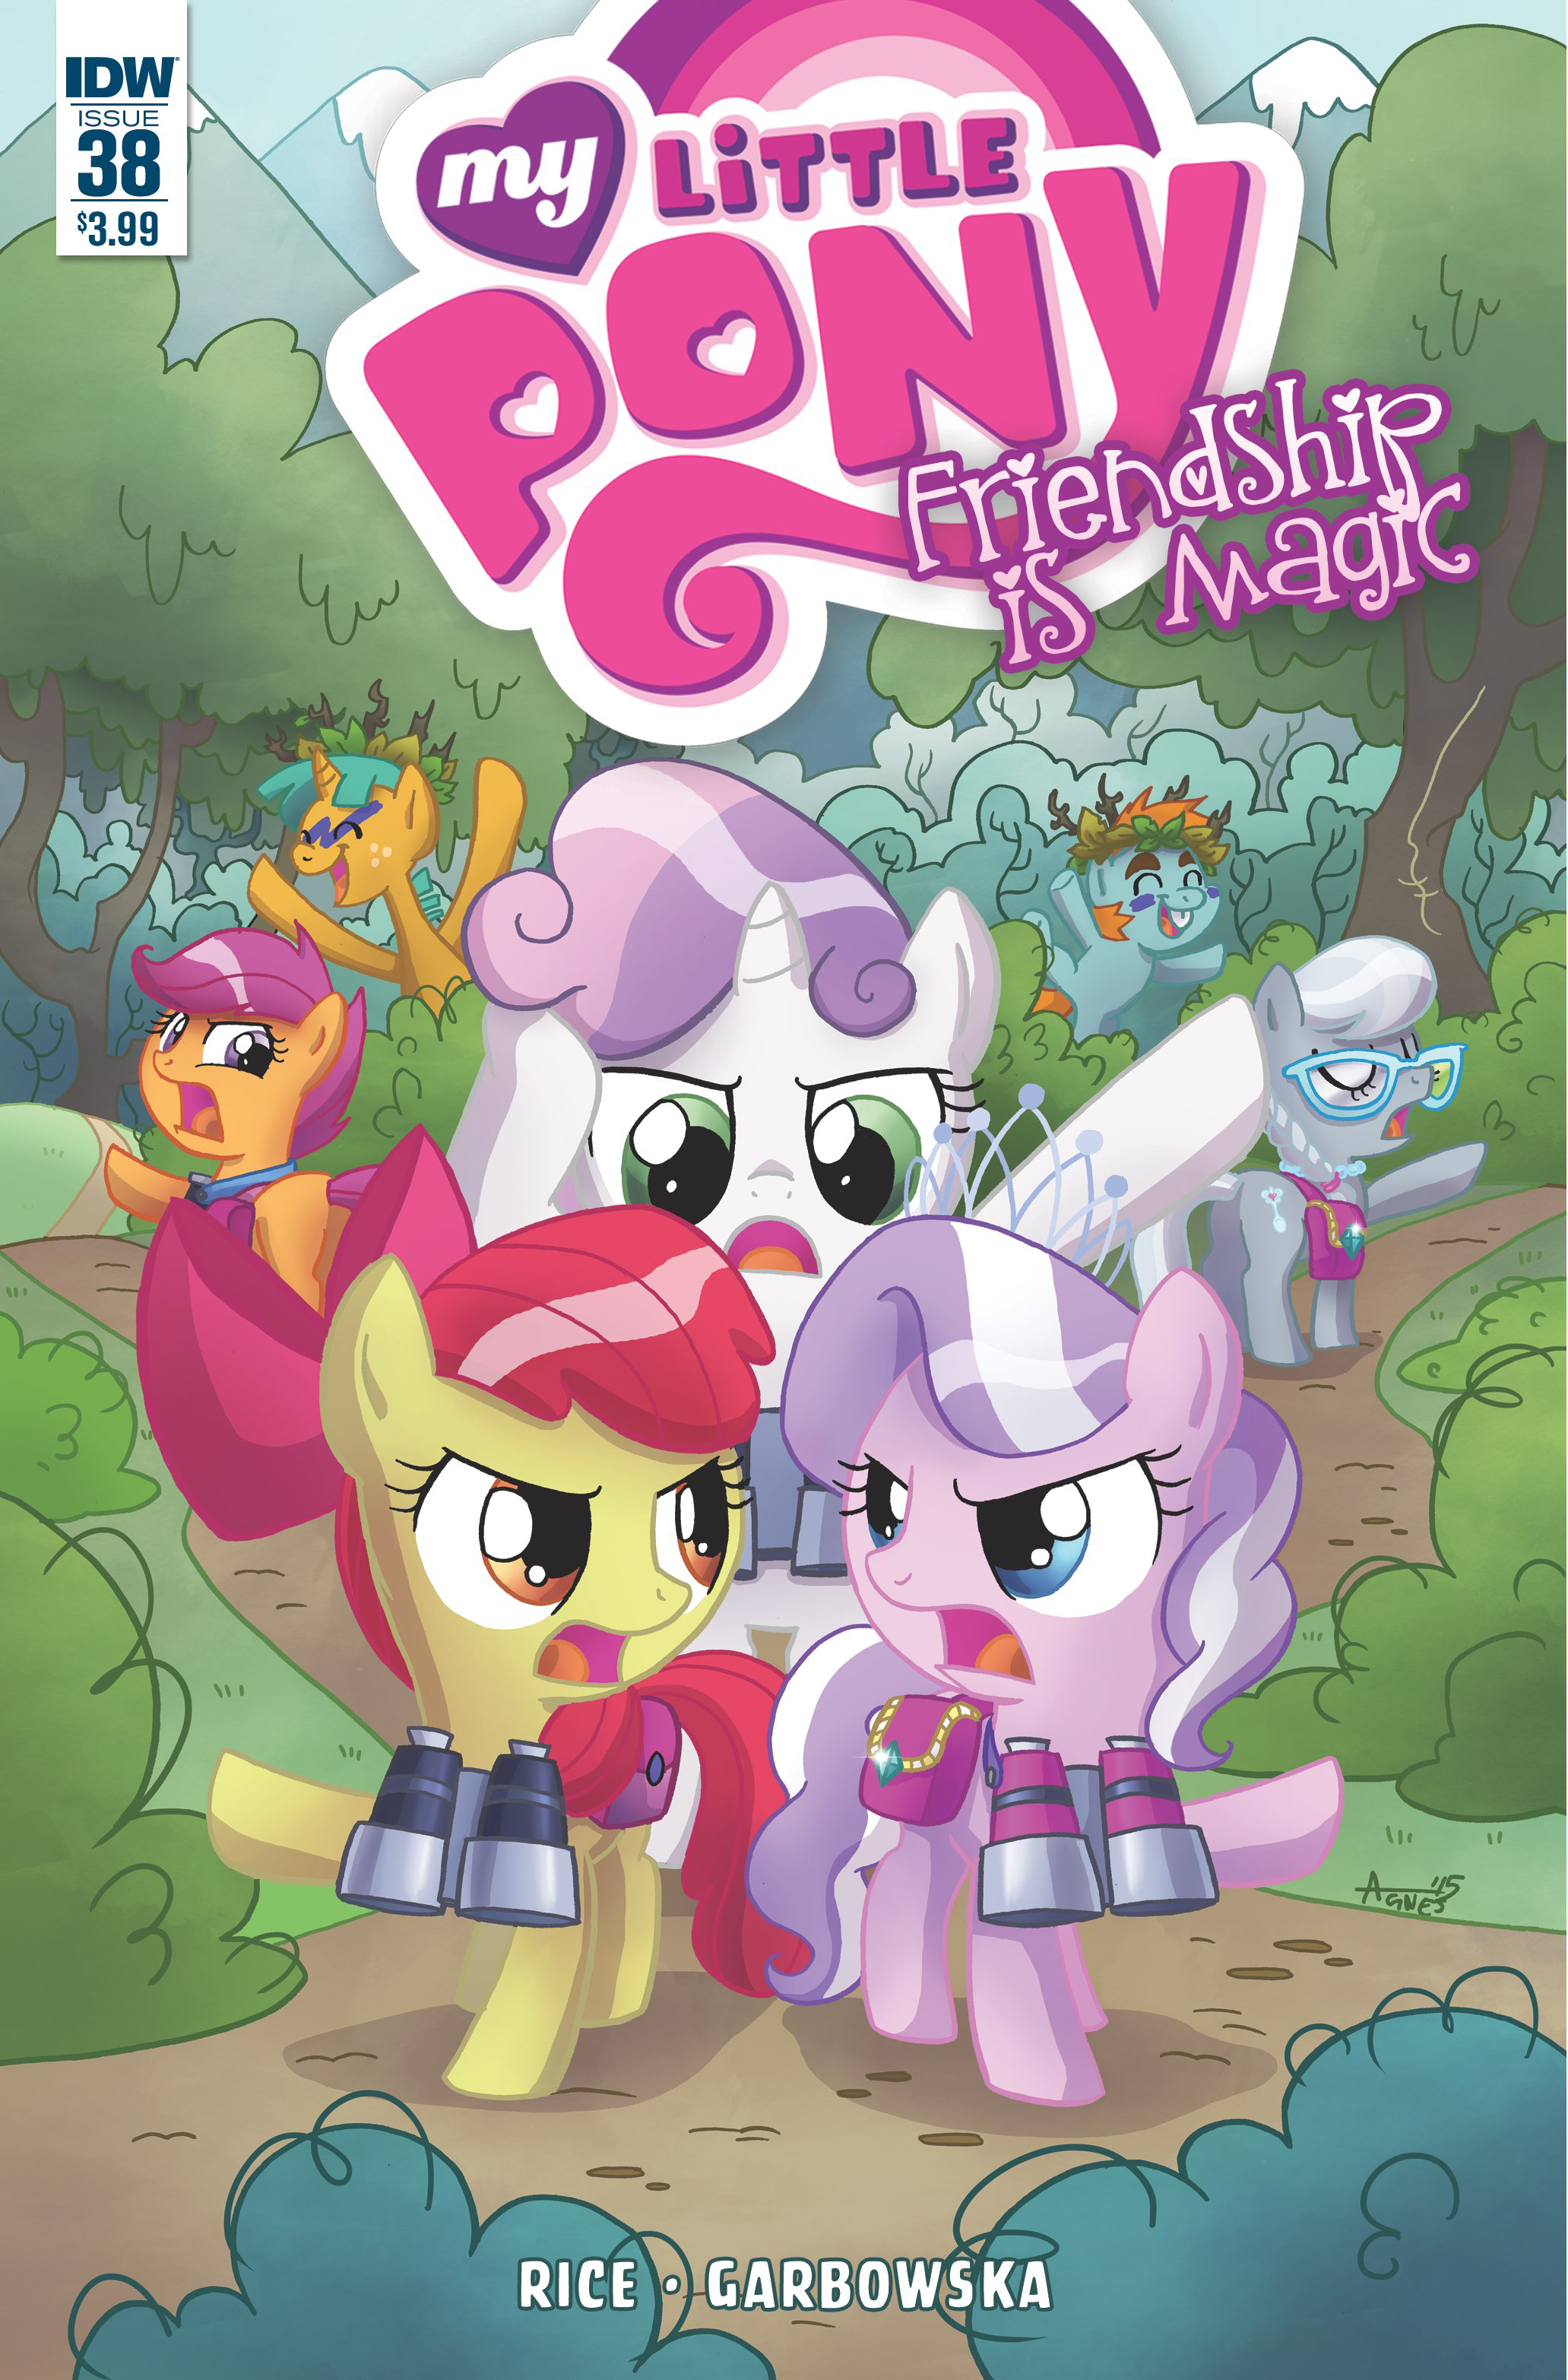 MY LITTLE PONY FRIENDSHIP IS MAGIC #38